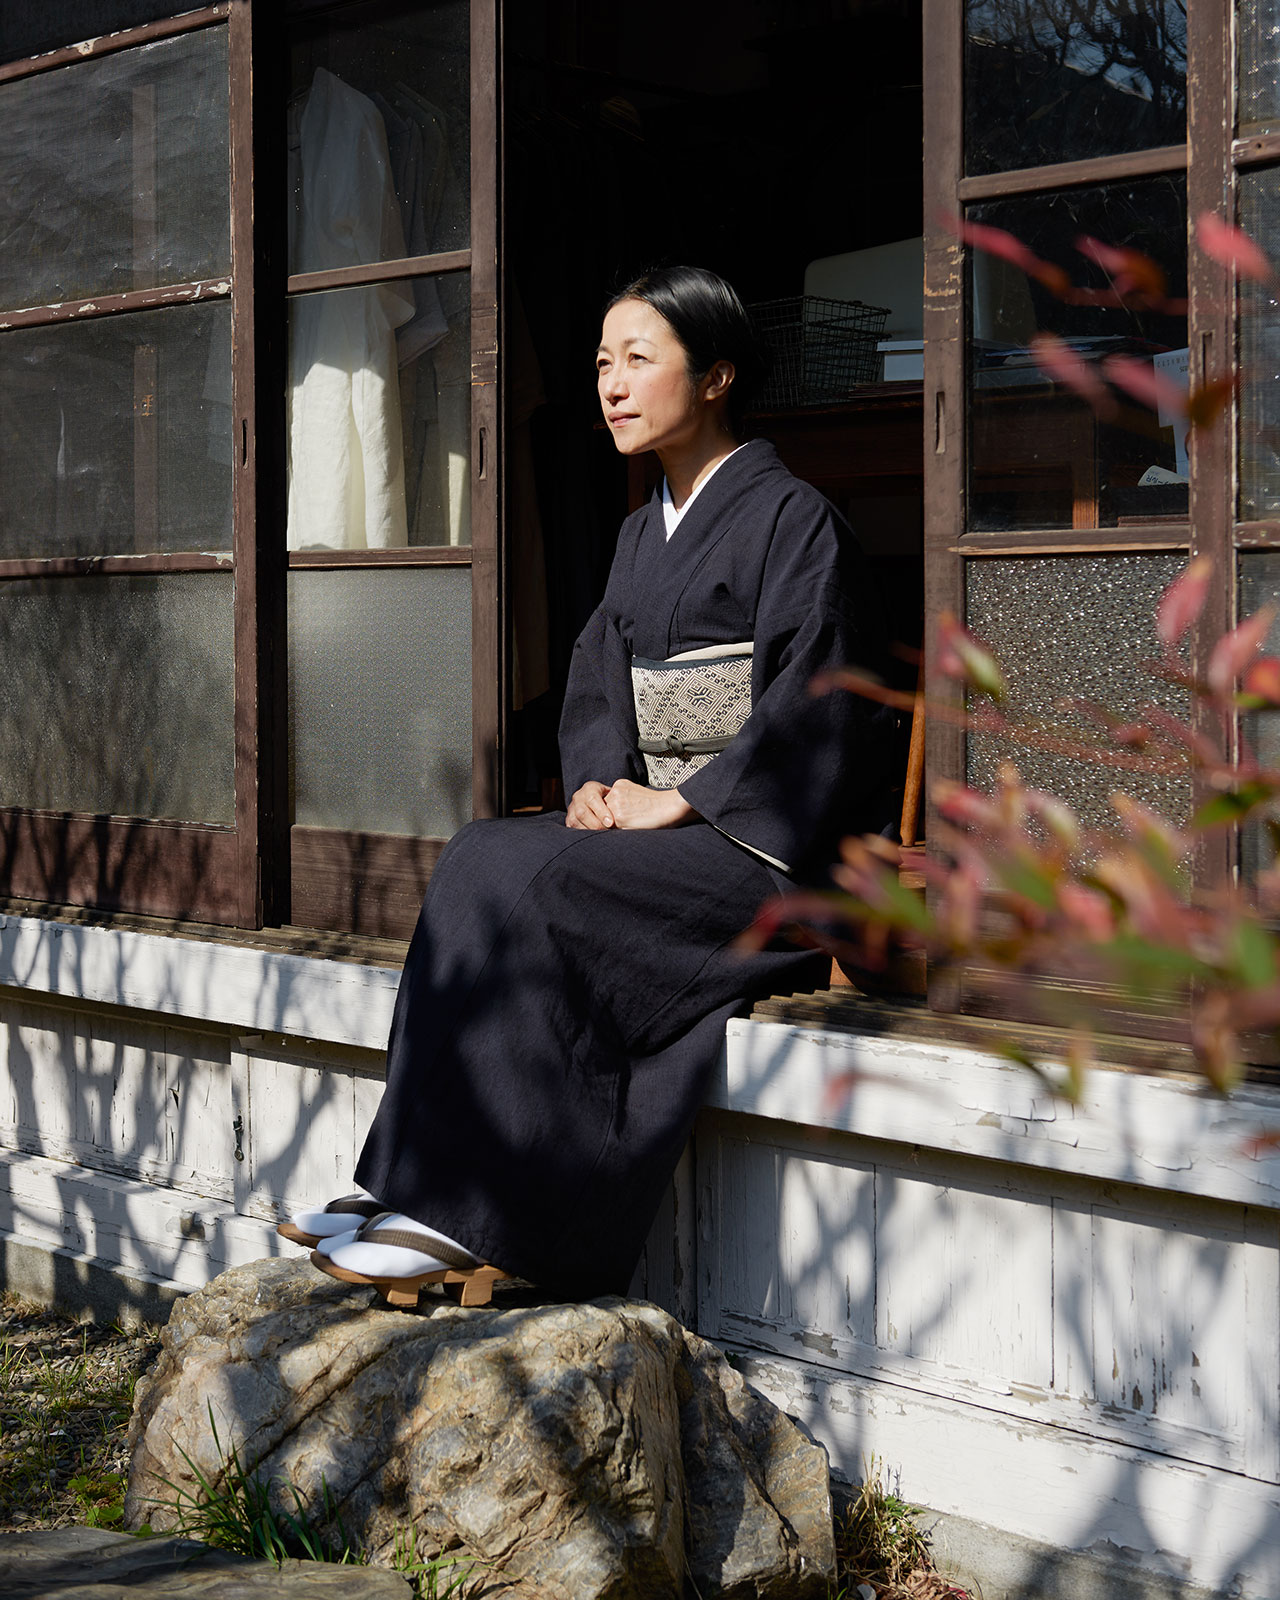 The Kinfolk Home. The house of Rieko Ohashi in Hayama, Japan. Photo by Kristofer Johnsson.